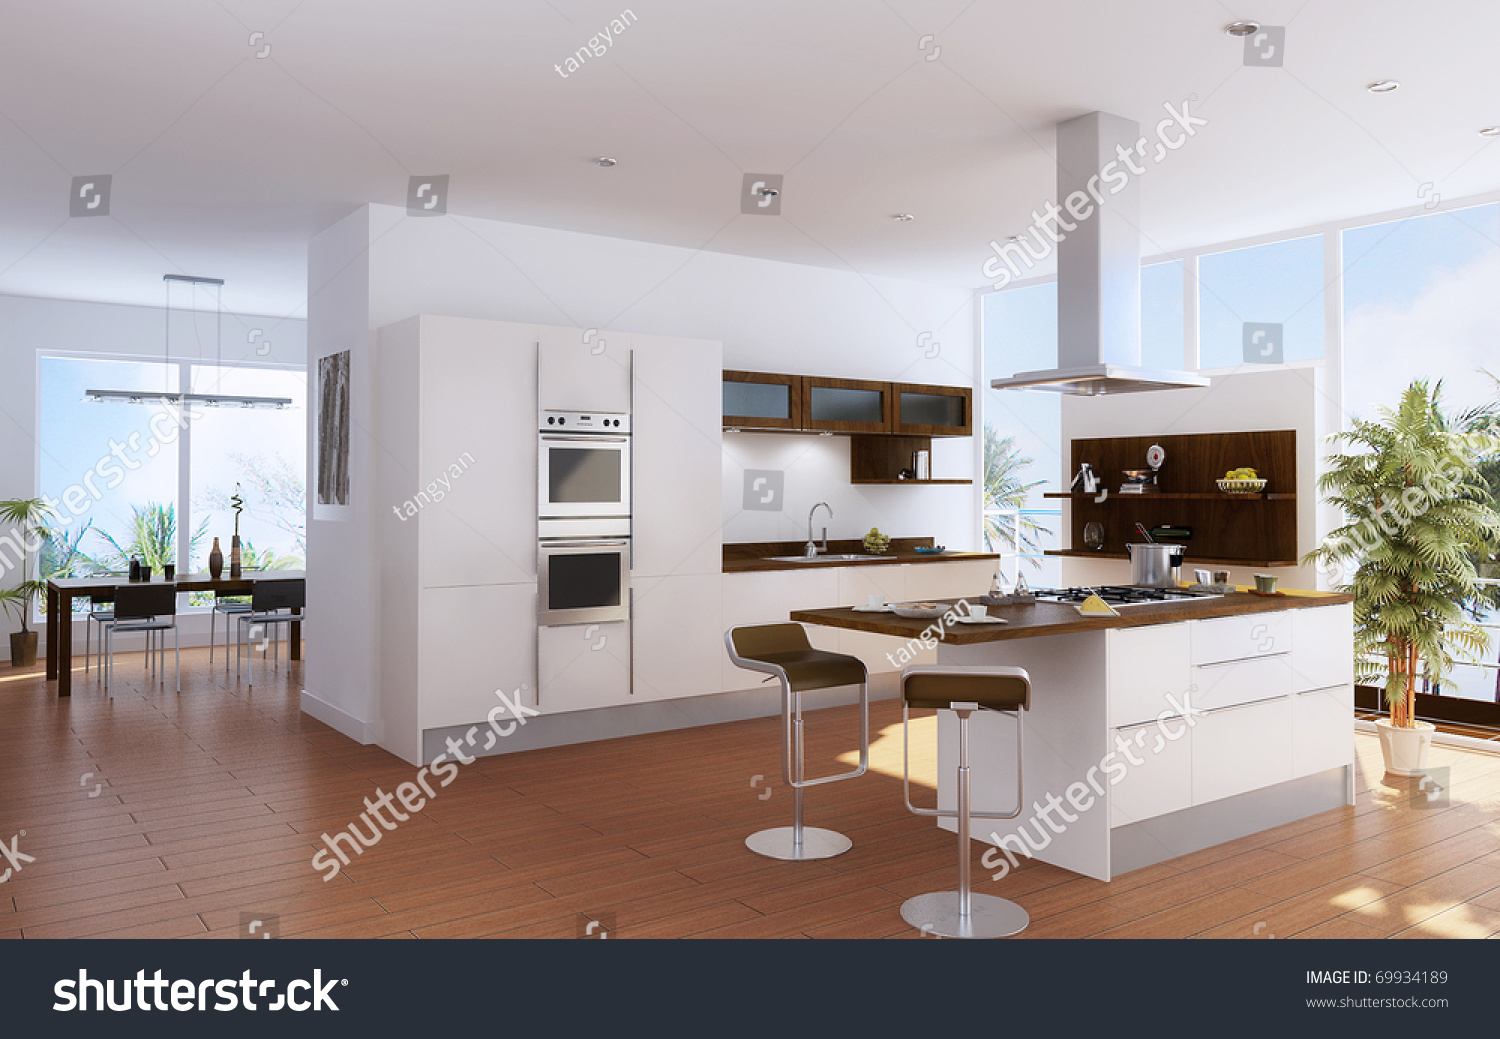 Kitchen interior design modern house - Modern interior kitchen design ...